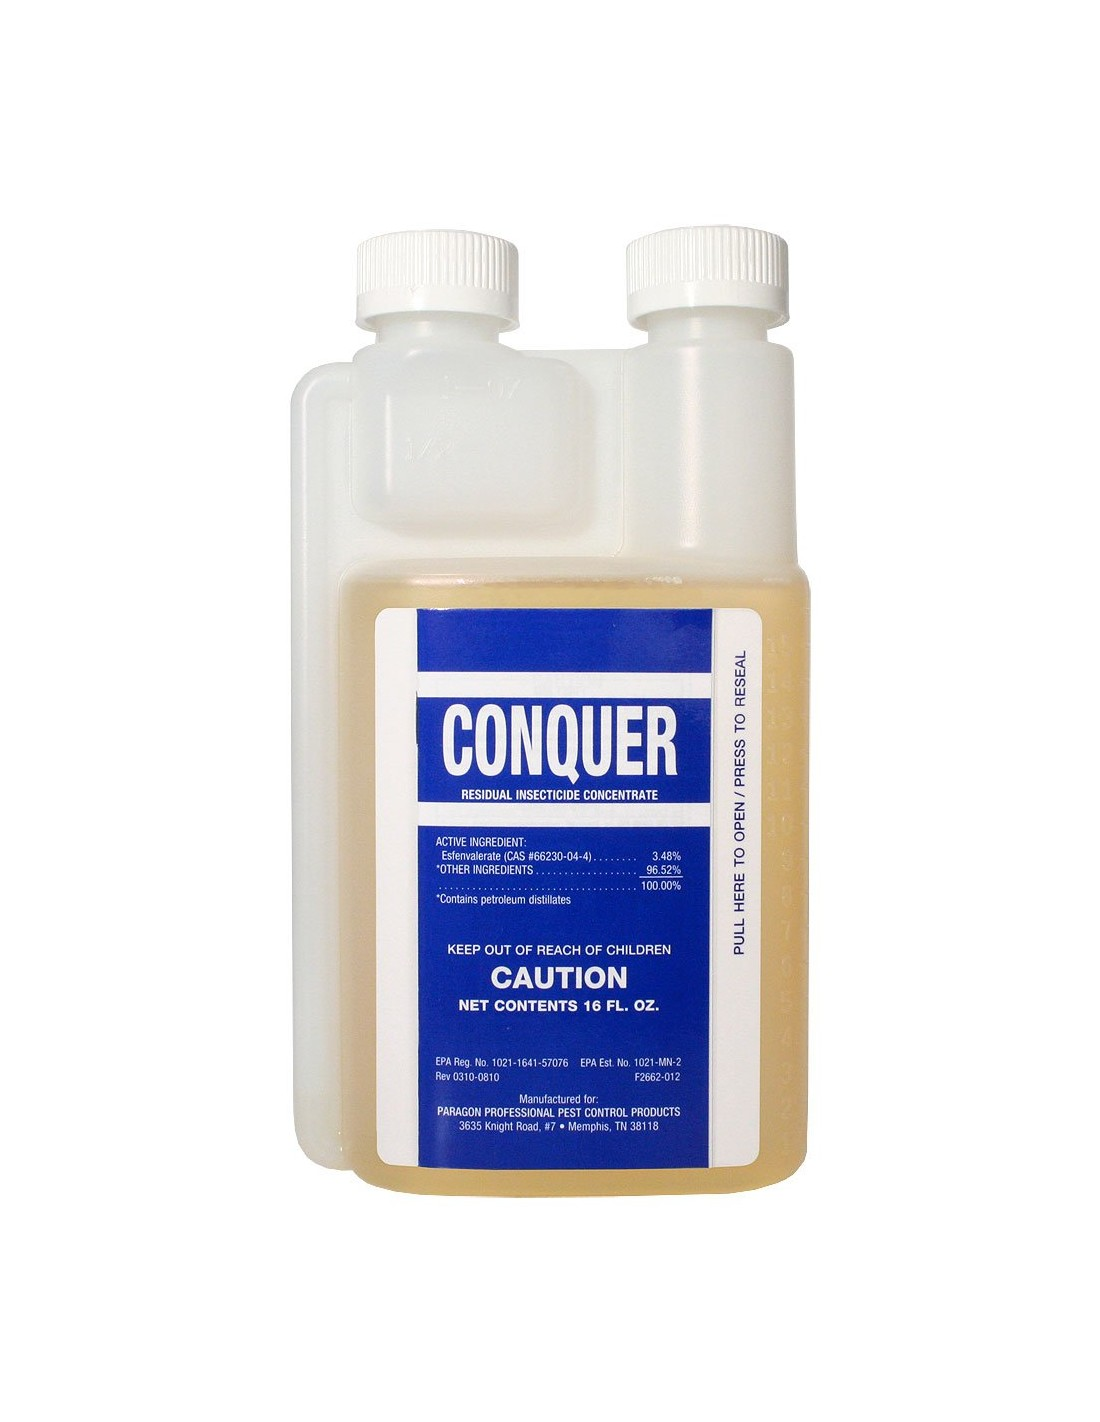 CONQUER Residual Insecticide Concentrate